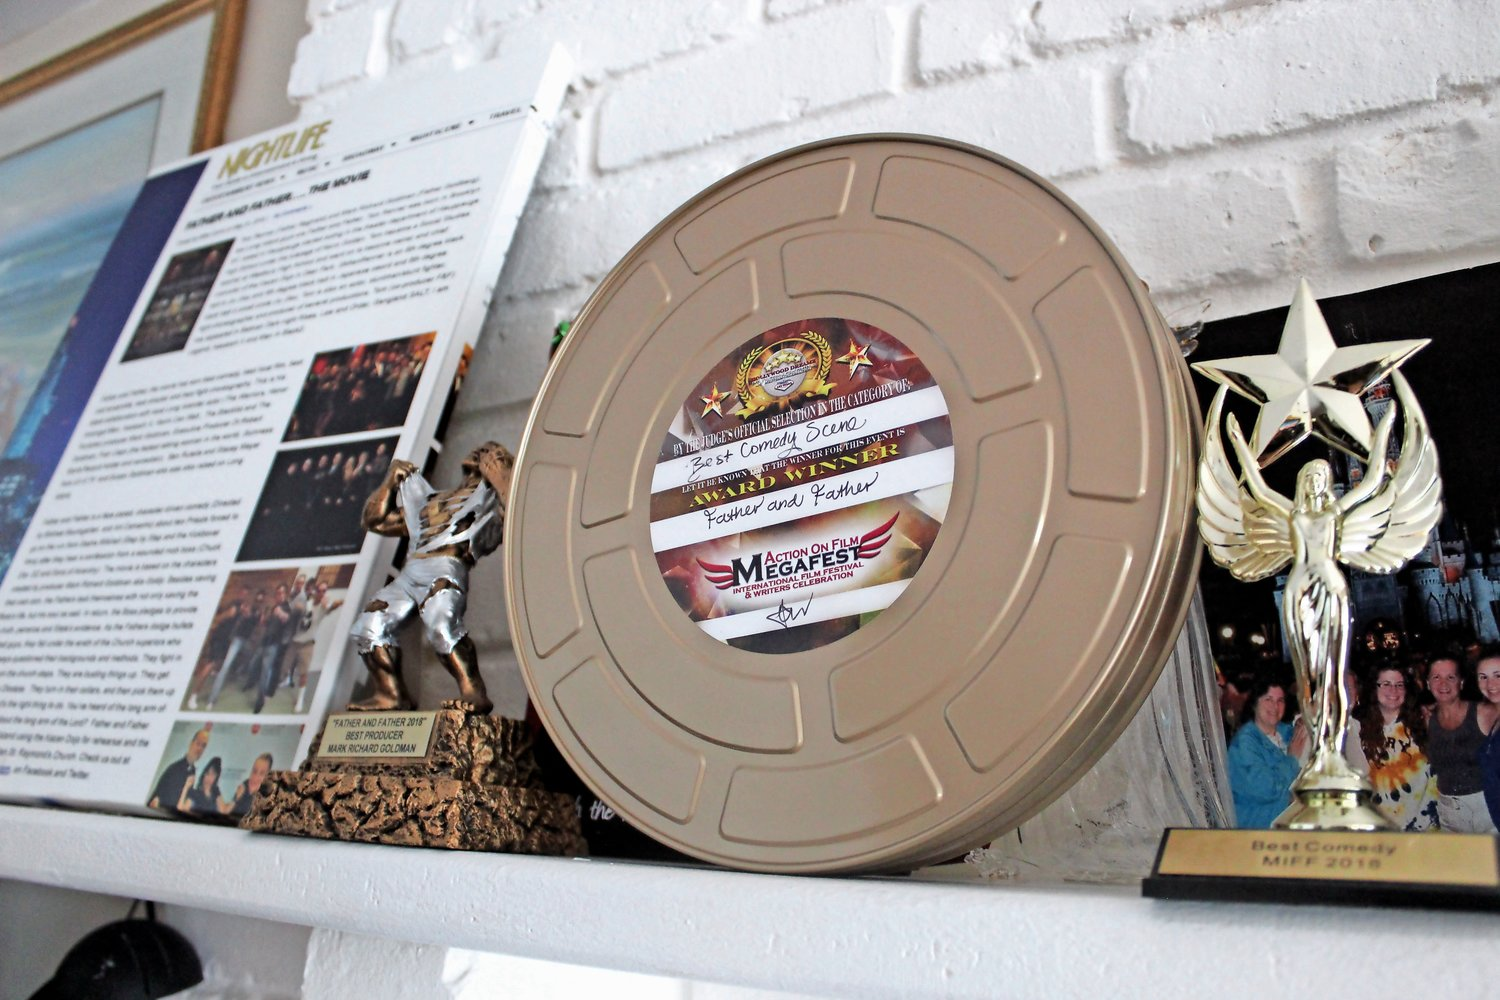 Lining the mantel of Goldman's home on Byron Road are awards he received from various film festivals and movie memorabilia.